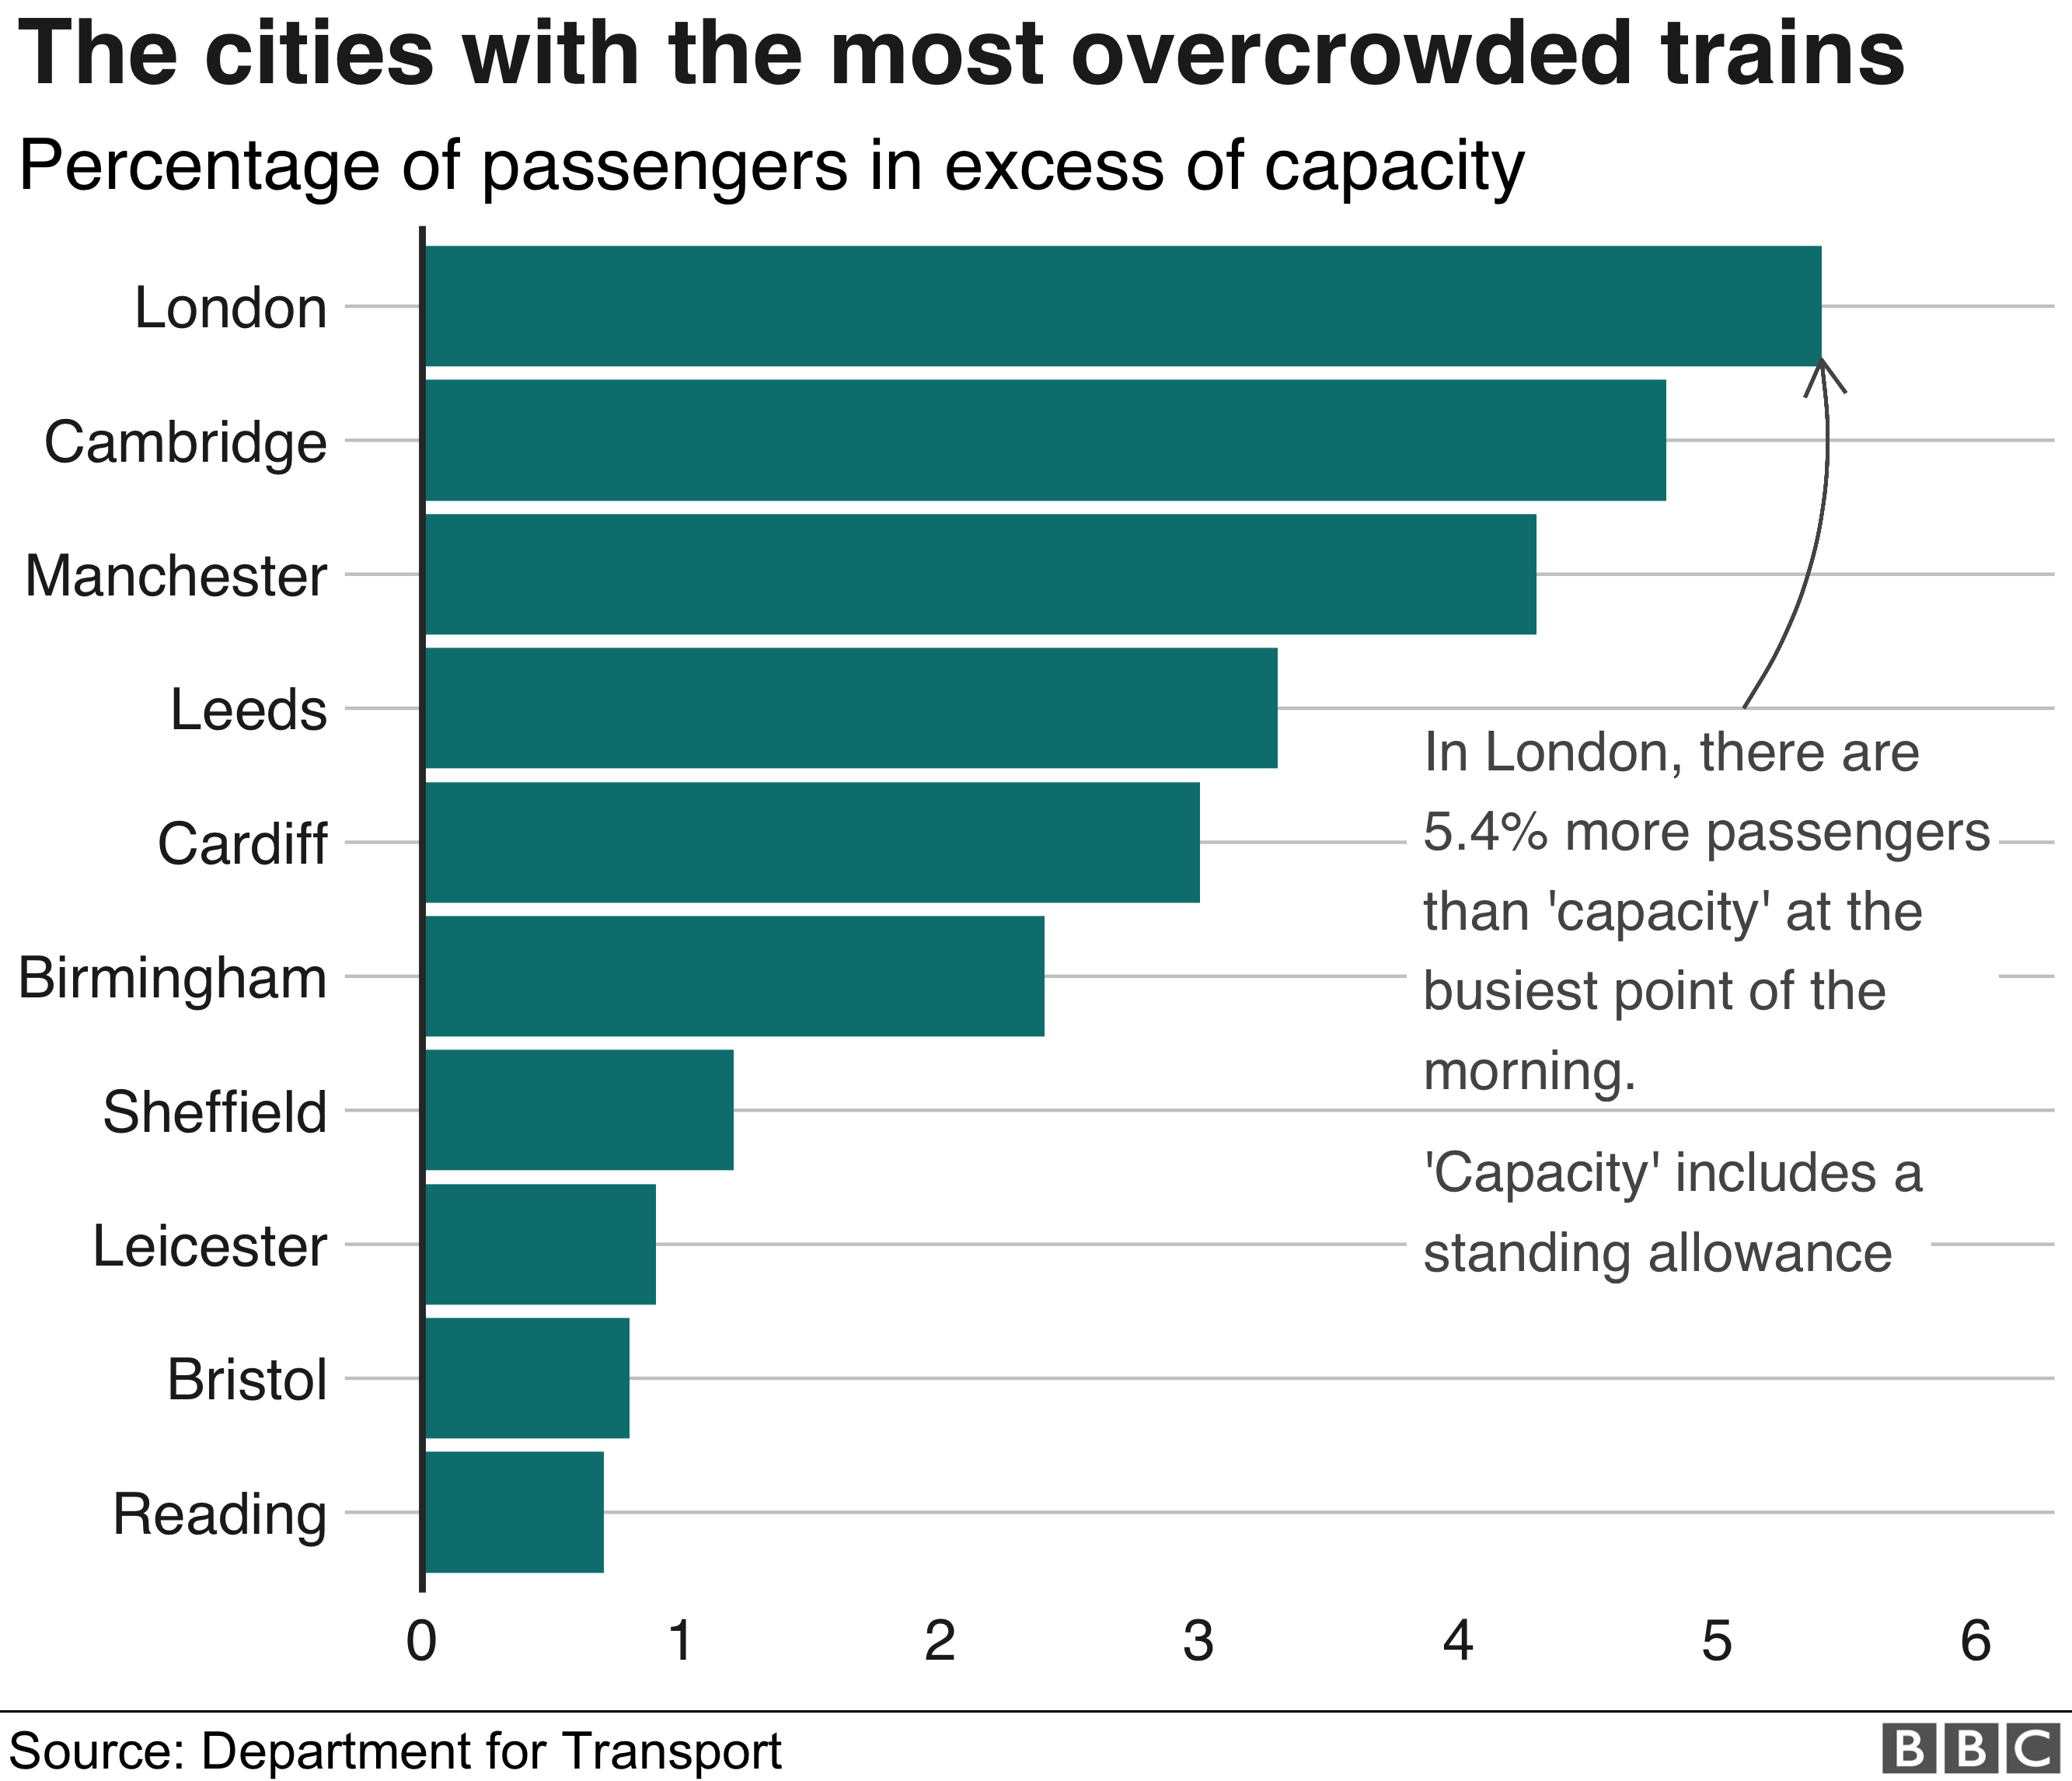 Chart showing ten cities with most overcrowding. London is top - there are 5.4% more passengers than capacity in the morning